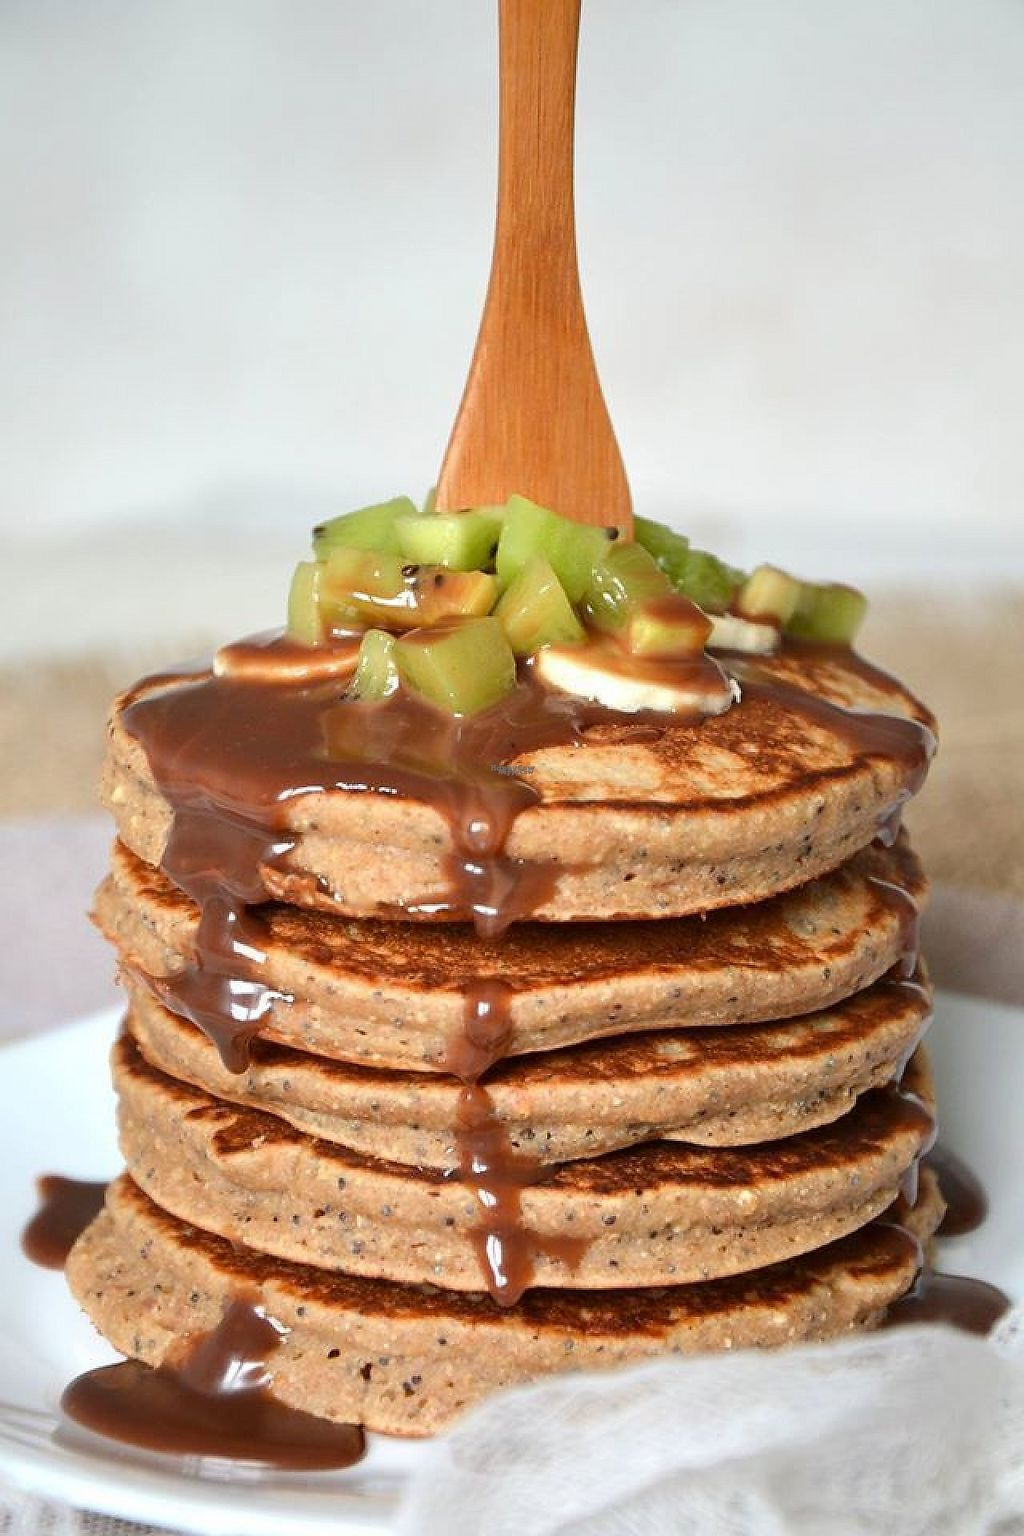 """Photo of La Vie Claire  by <a href=""""/members/profile/community"""">community</a> <br/>vegan pancakes  <br/> February 4, 2017  - <a href='/contact/abuse/image/72005/221854'>Report</a>"""